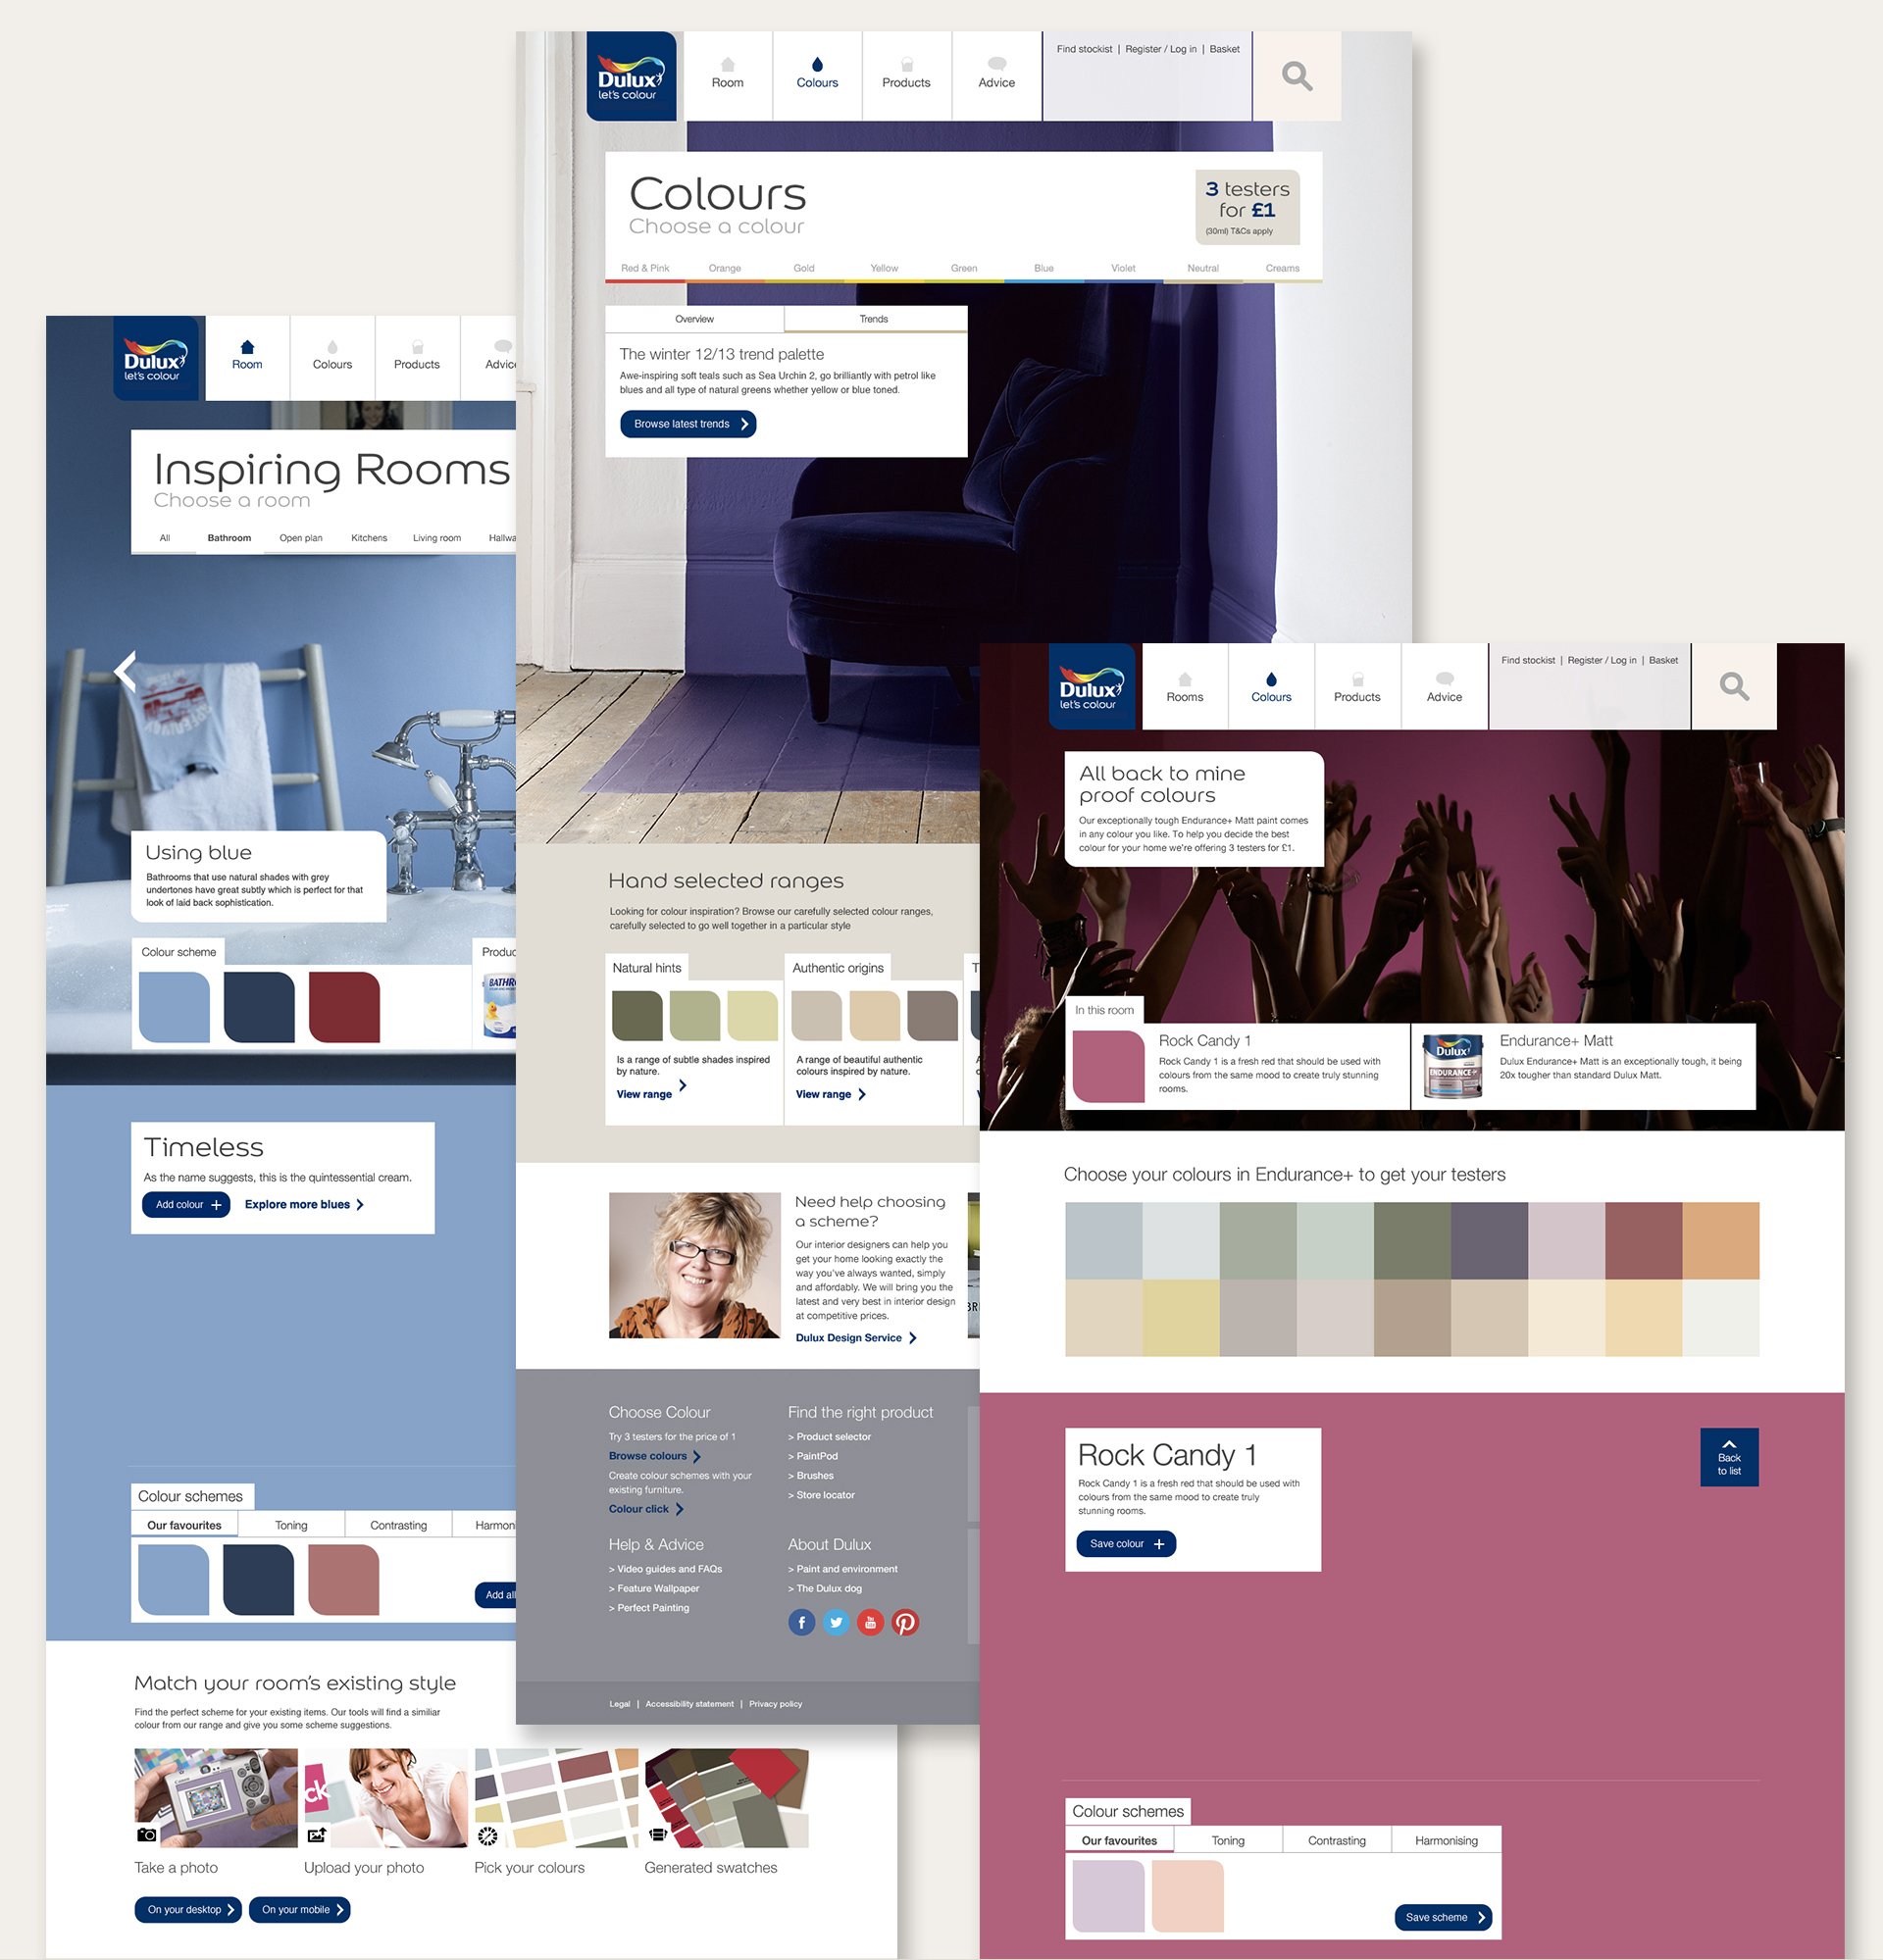 dulux_pages